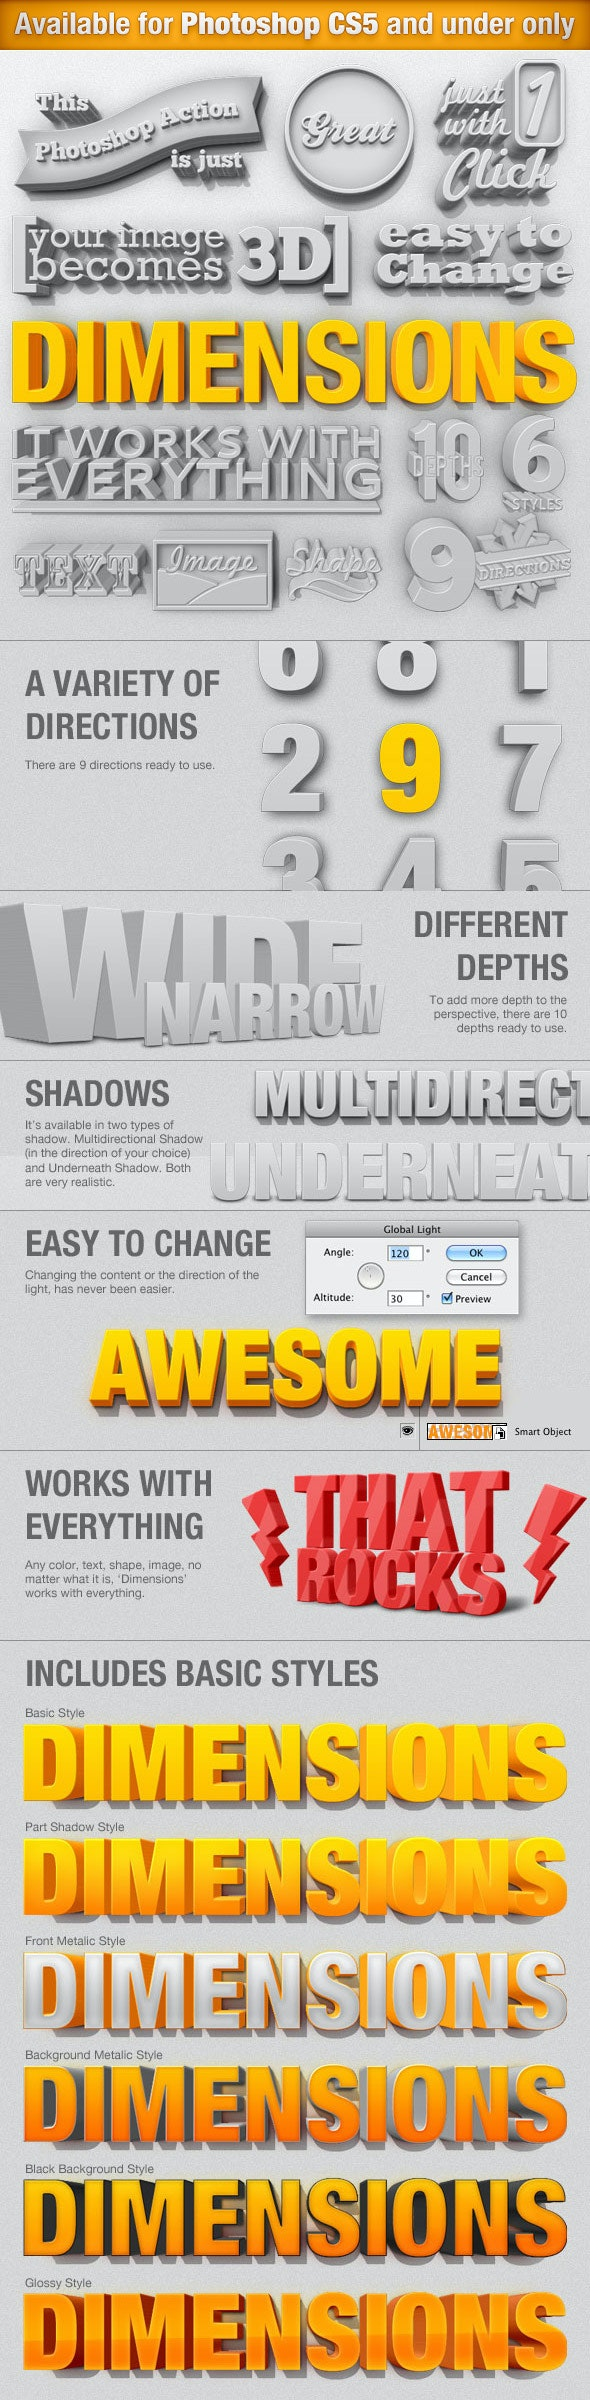 Dimensions - 3D Generator Action - Text Effects Actions